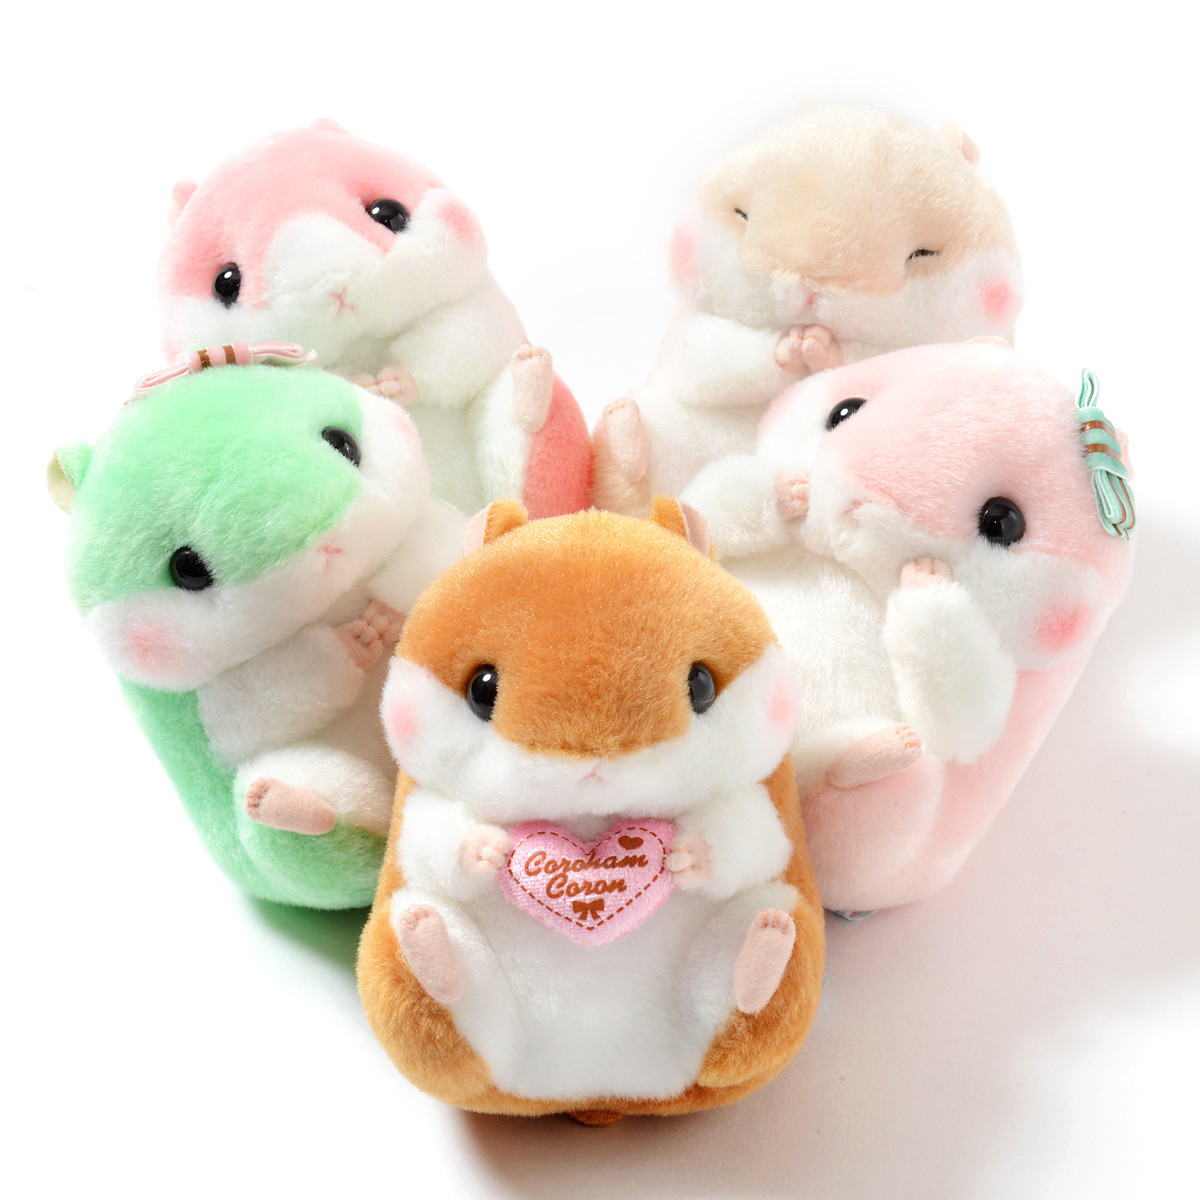 Coroham Coron Cutie Hamster Plush Collection Standard